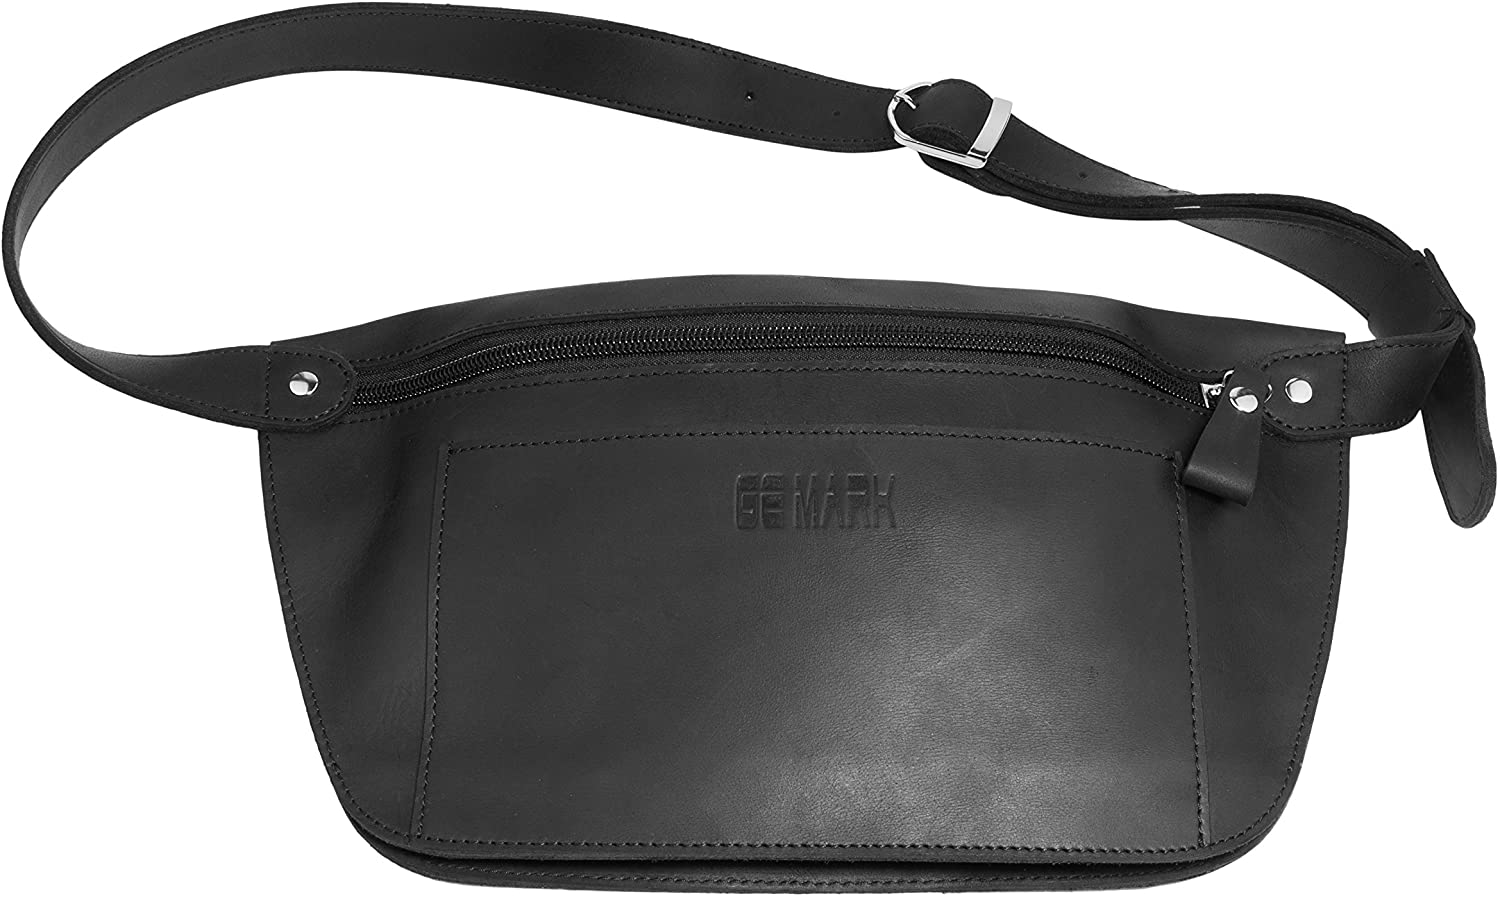 Leather Belt Bag - Genuine Waist Bag - Fanny Pack - for Man Woman by GE MARK (black)